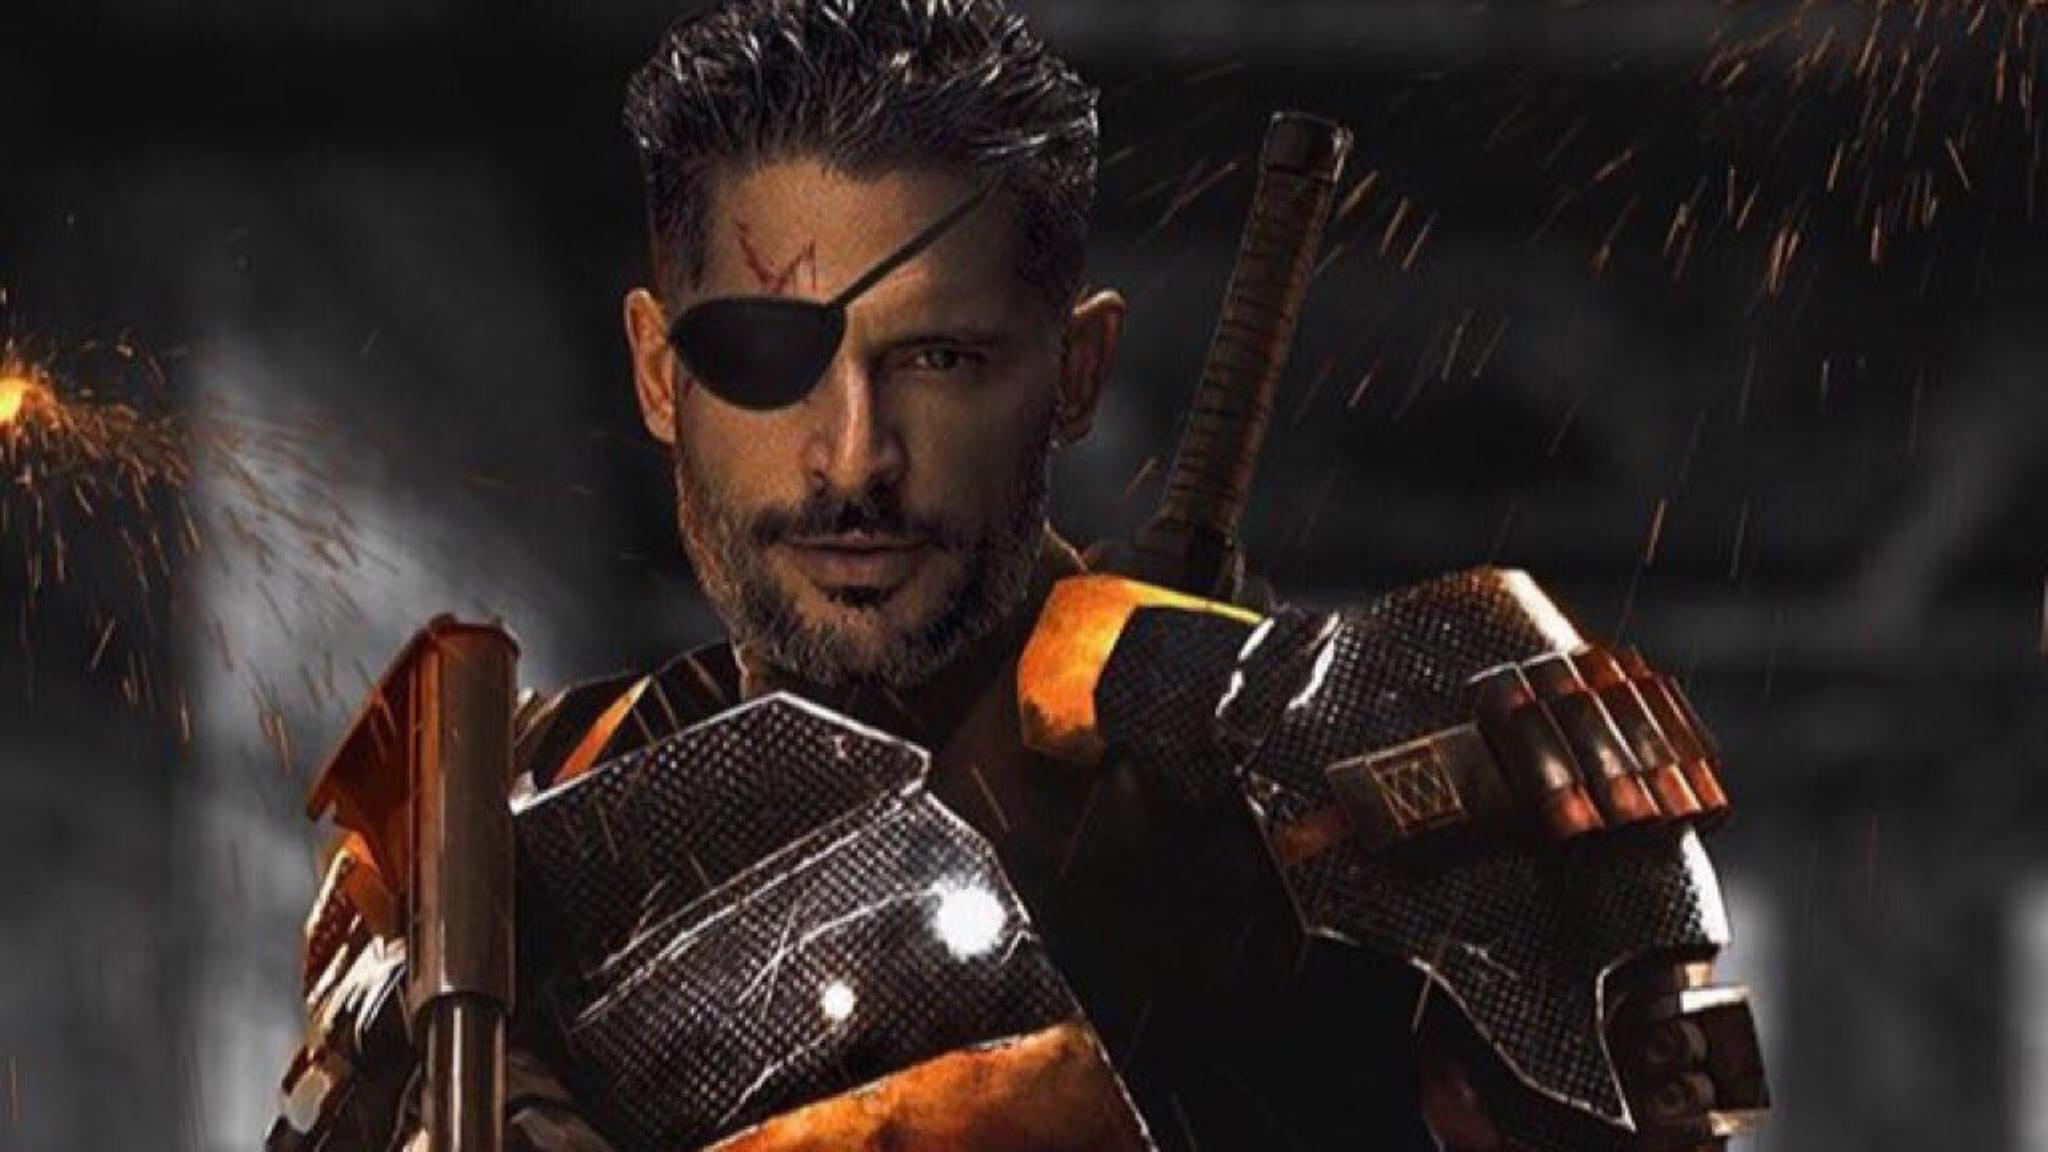 Change We Can Believe In >> The Raid Director Favored To Helm Deathstroke DC Spinoff